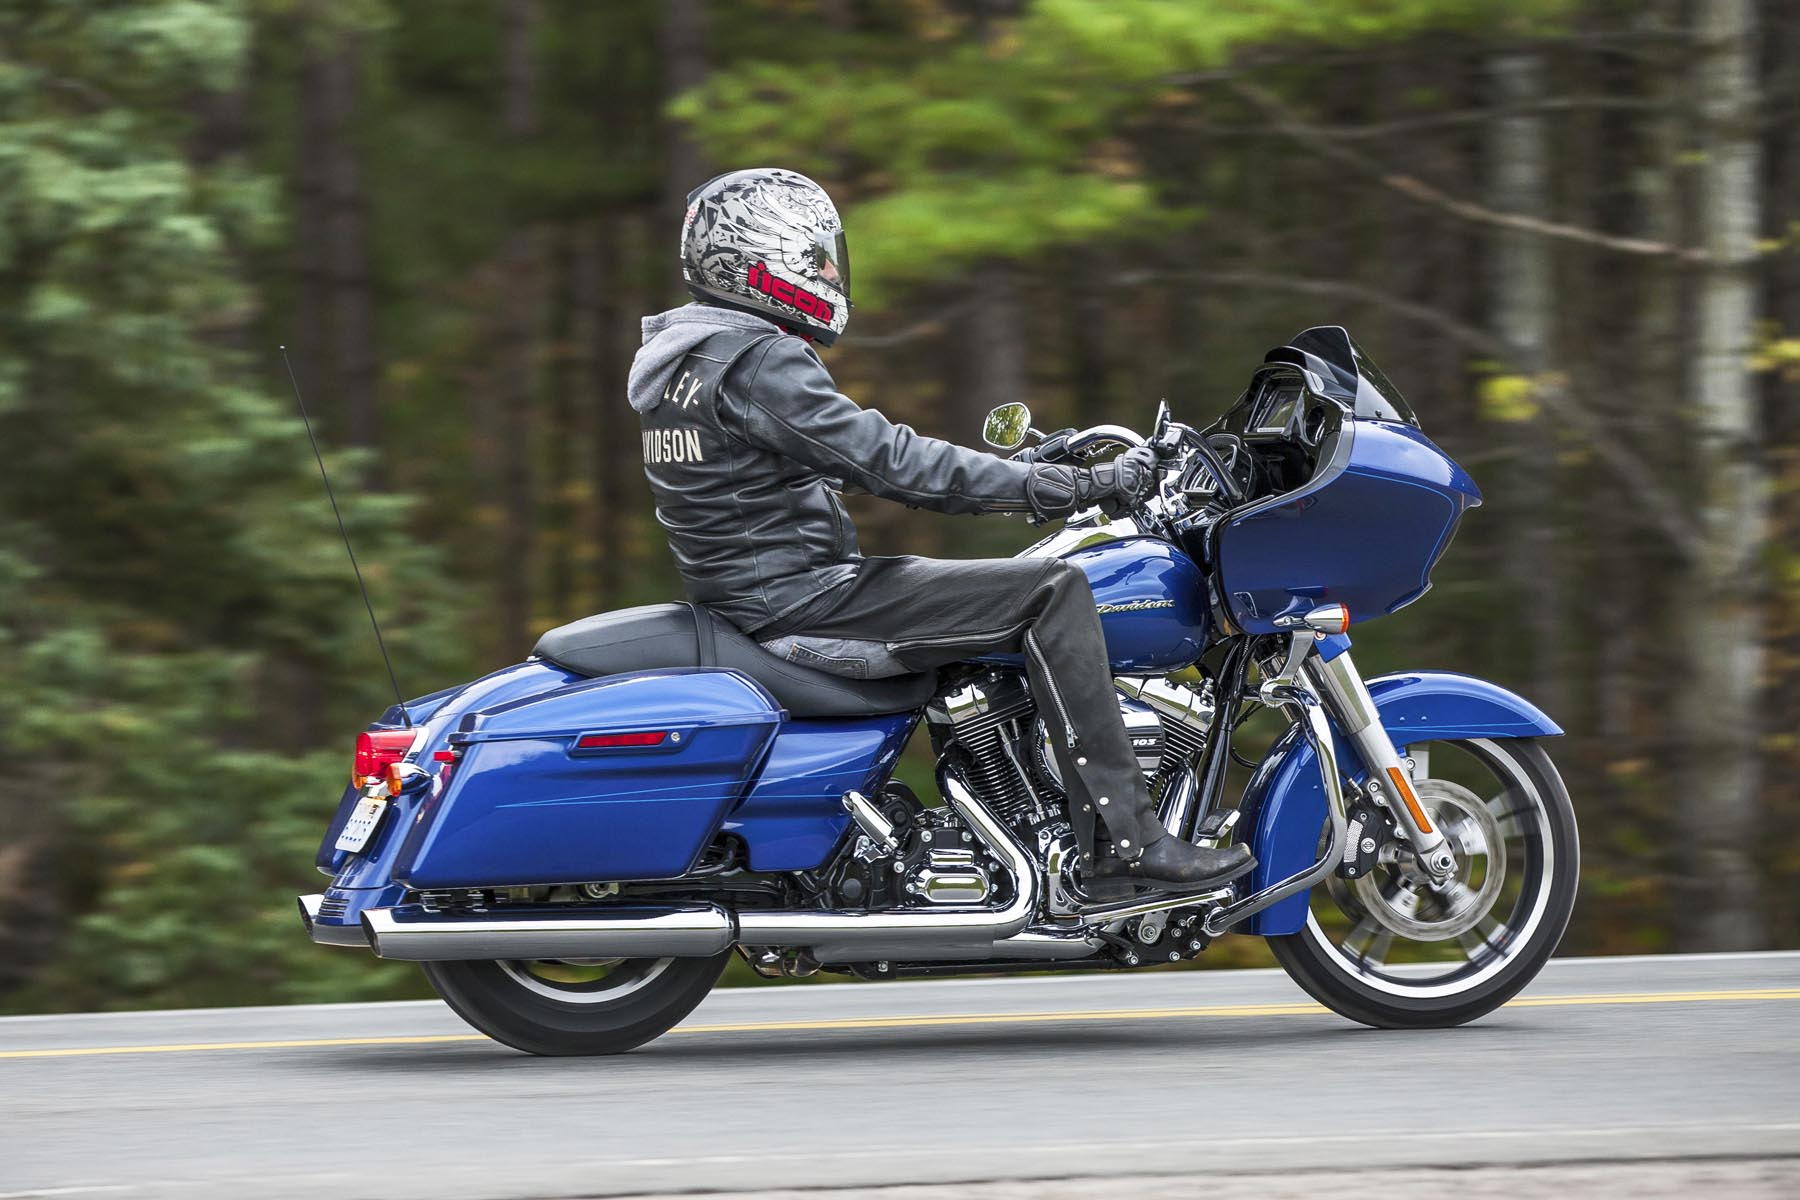 Enhancements for the 2015 Road Glide include the upgraded High Output Twin Cam 103 engine. The lightweight piston design and higher compression ratio increases efficiency and horsepower, improved airflow and upgraded cam optimize low-end torque while twin cooling of the heads and exhaust ports allow for the delivery of peak performance at higher temperatures. Harley is notorious for not posting horsepower numbers but the 1,690cc displacement powerplant with integrated oil cooler boasts 105 ft-lbs. of torque at 3,250 rpm. It pulls harder, sounds better and runs cooler.